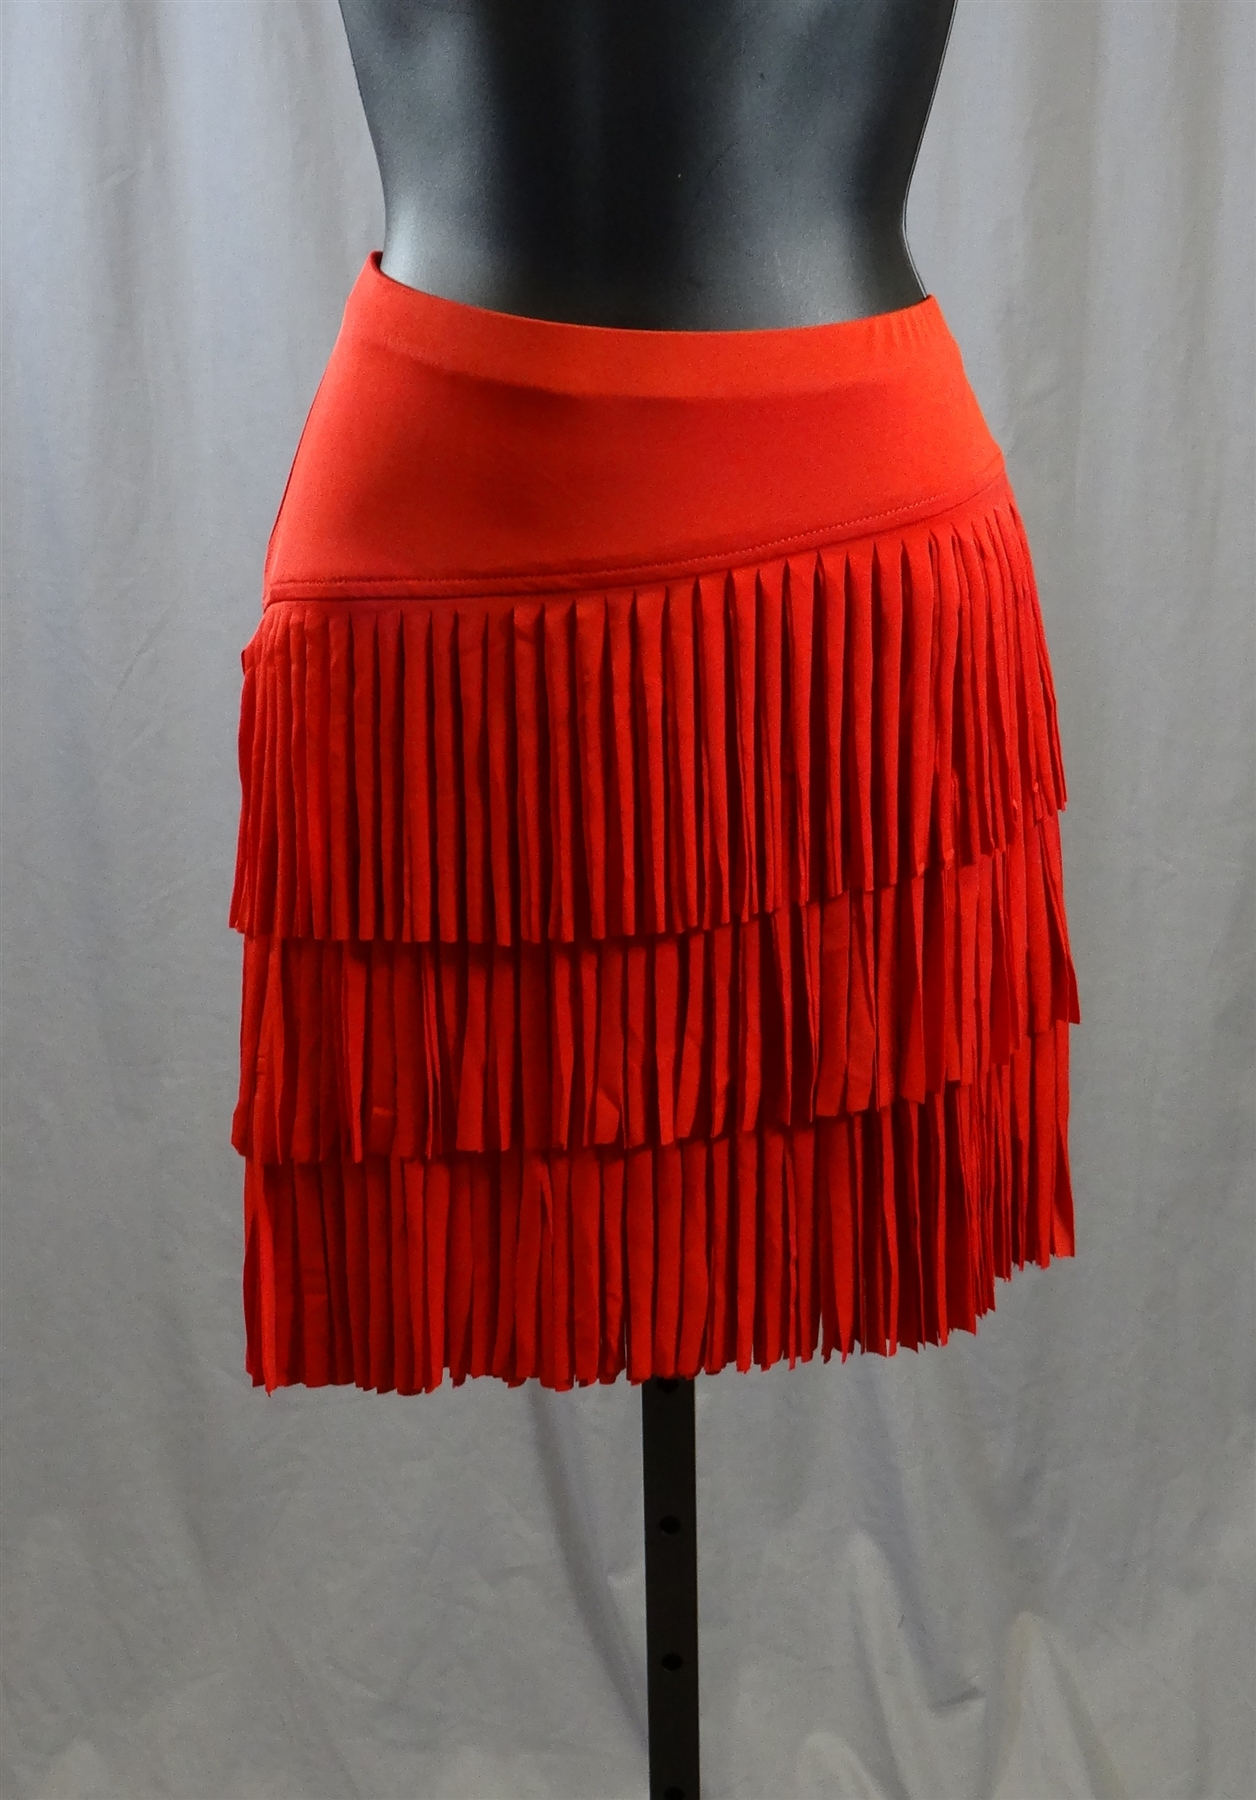 Cloth Fringe Latin Skirt With Built In Under Pants